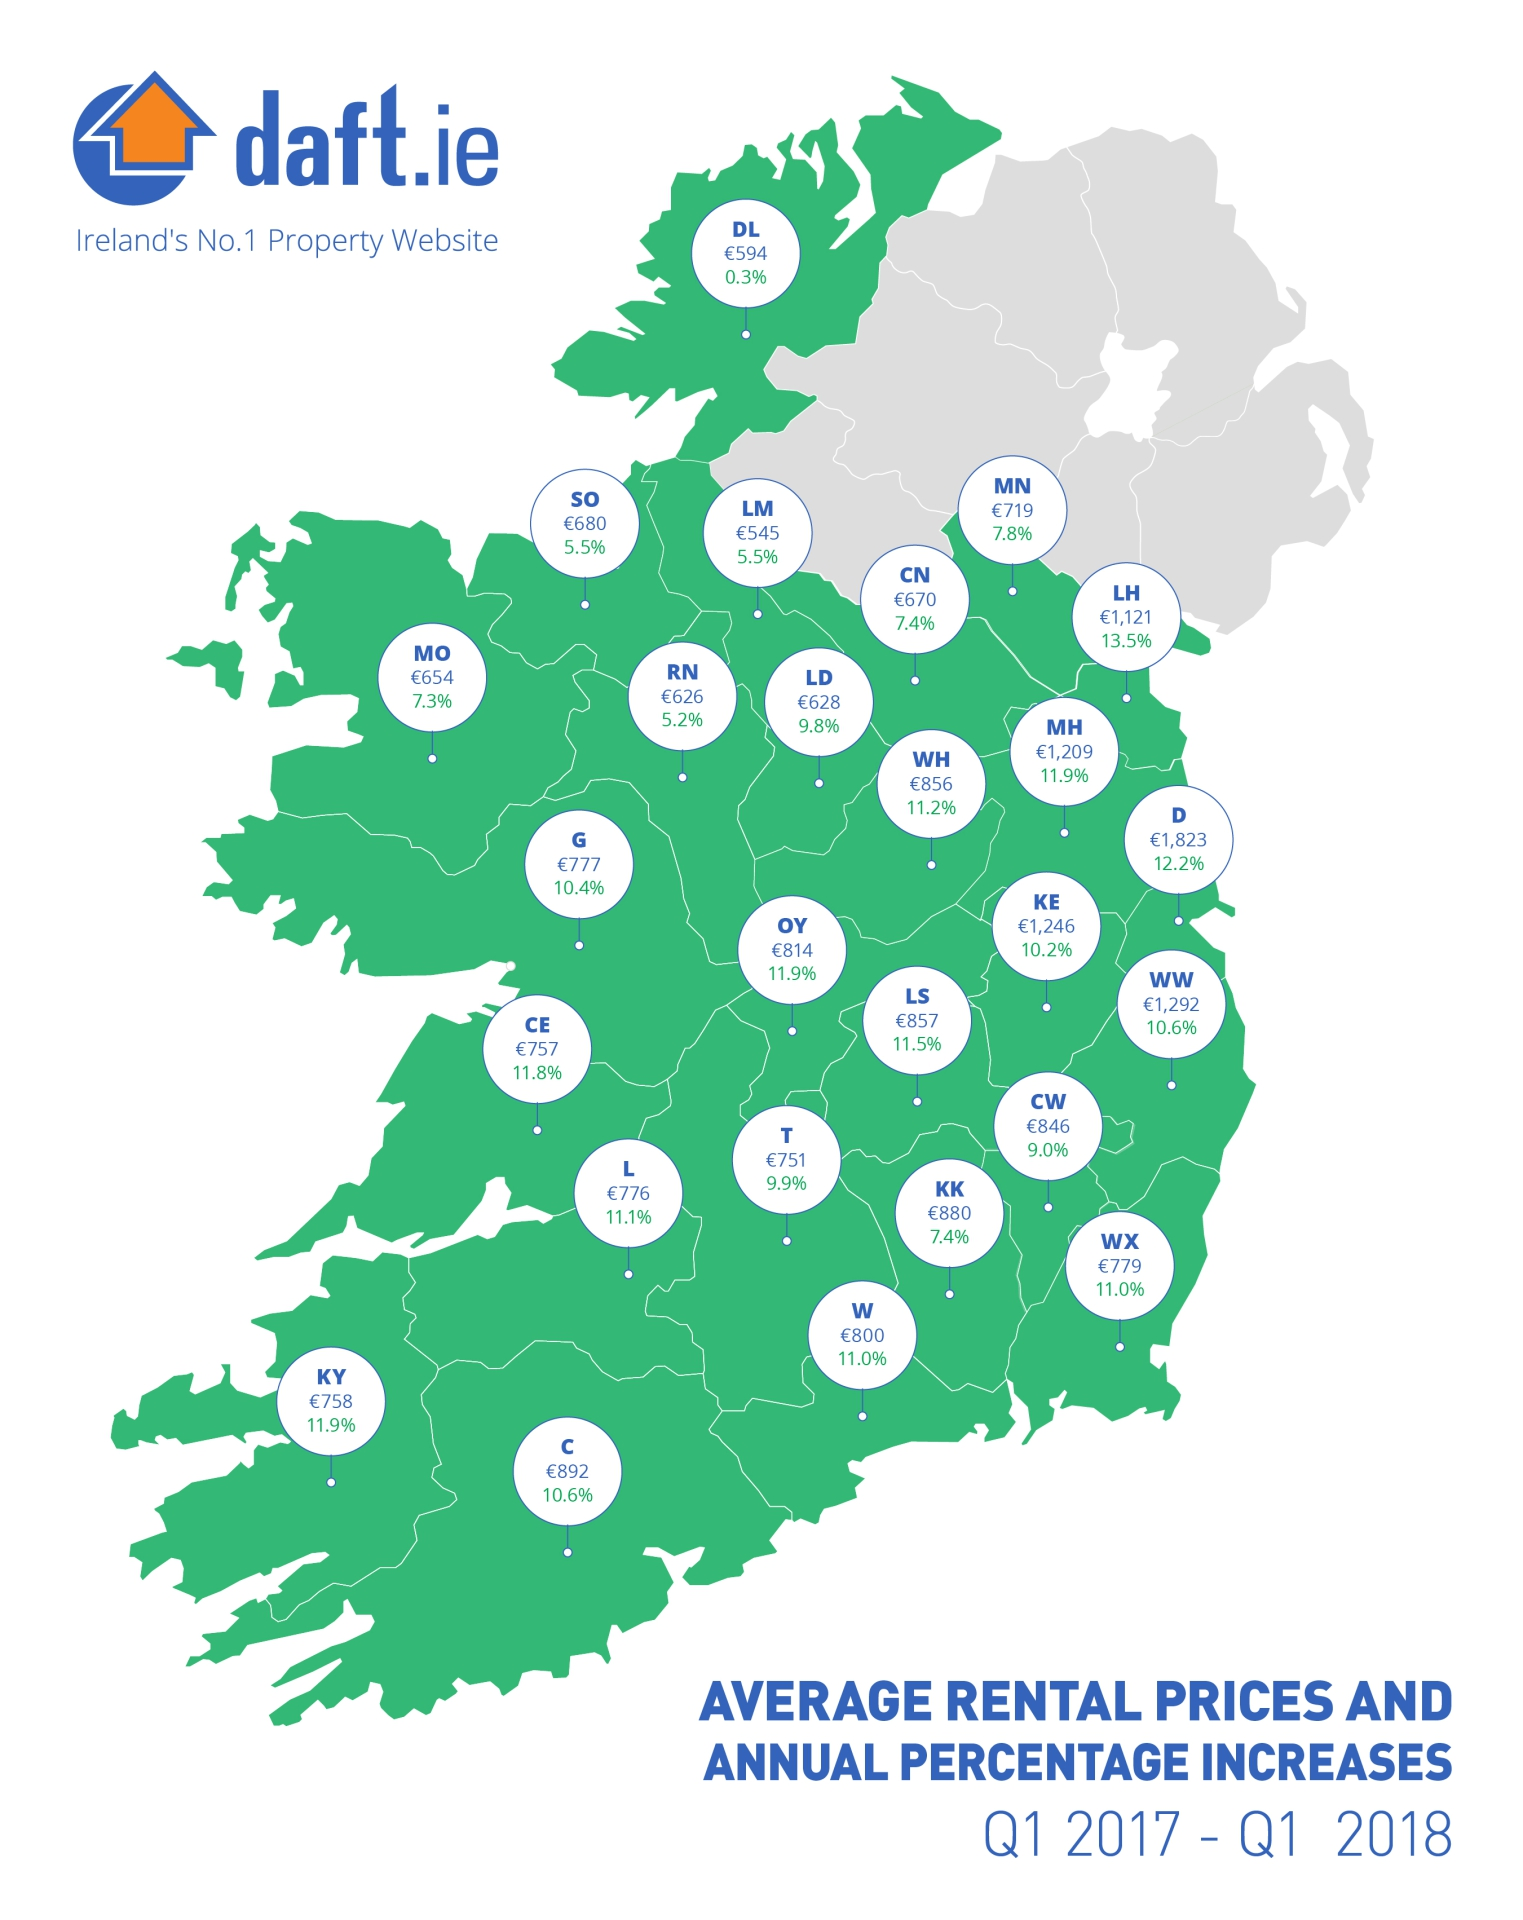 5.5% increase in Leitrim rents according to latest Daft.ie rental report